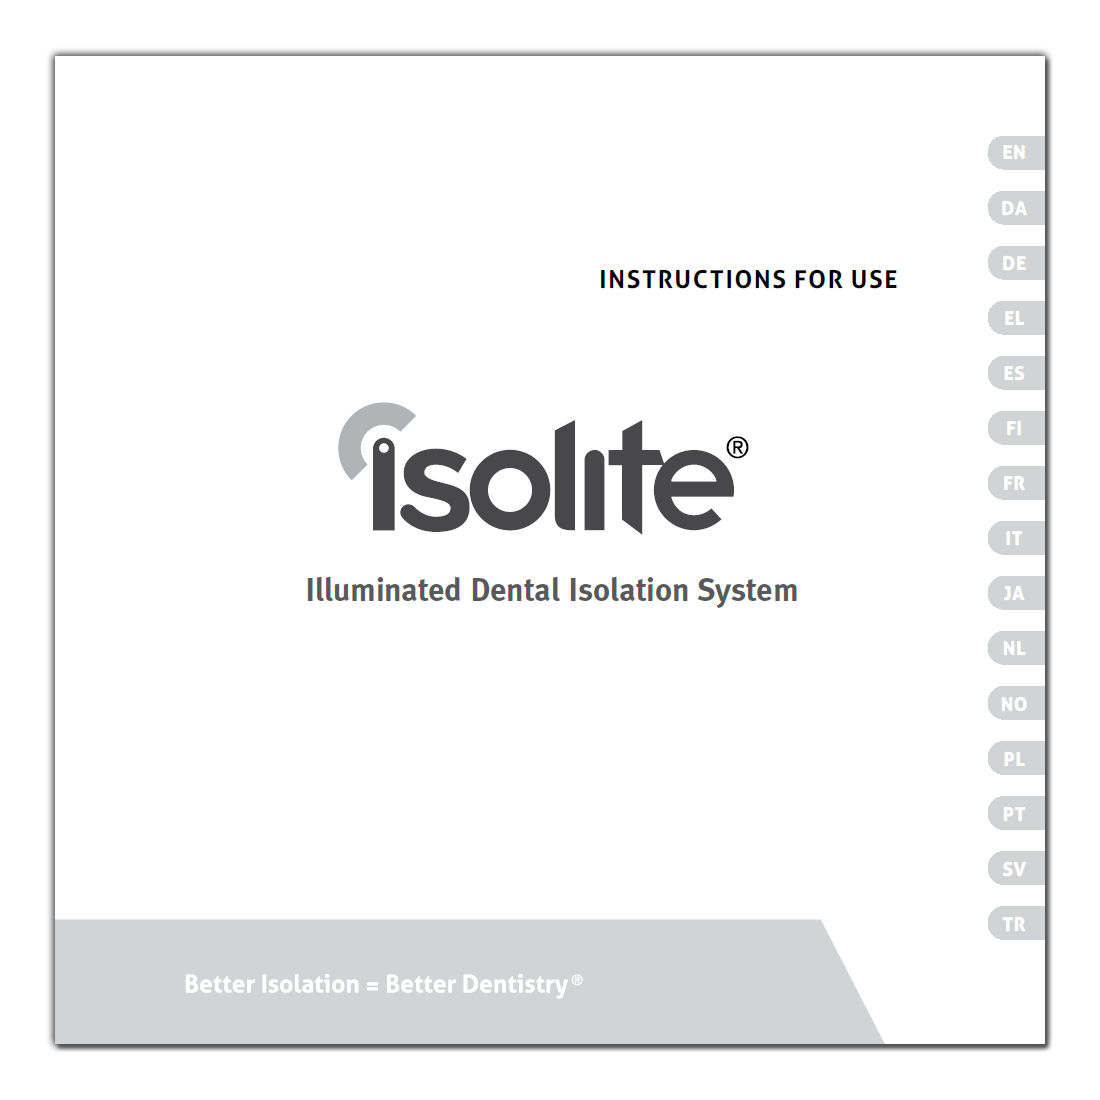 Isolite Instructions For Use